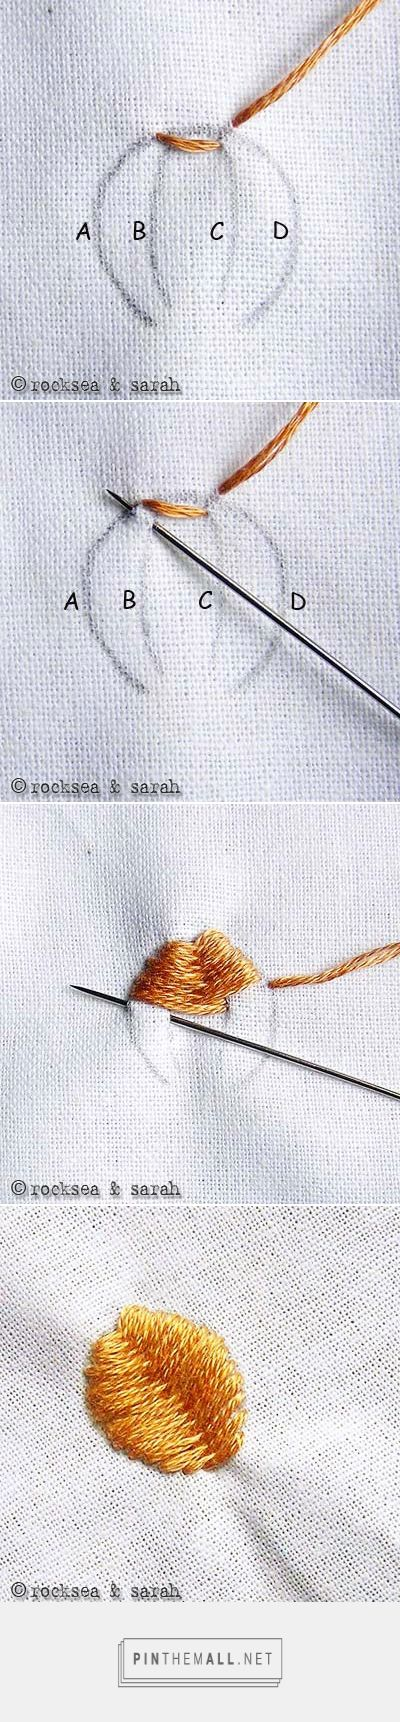 flat stitch » Sarah's Hand Embroidery Tutorials - created via https://pinthemall.net